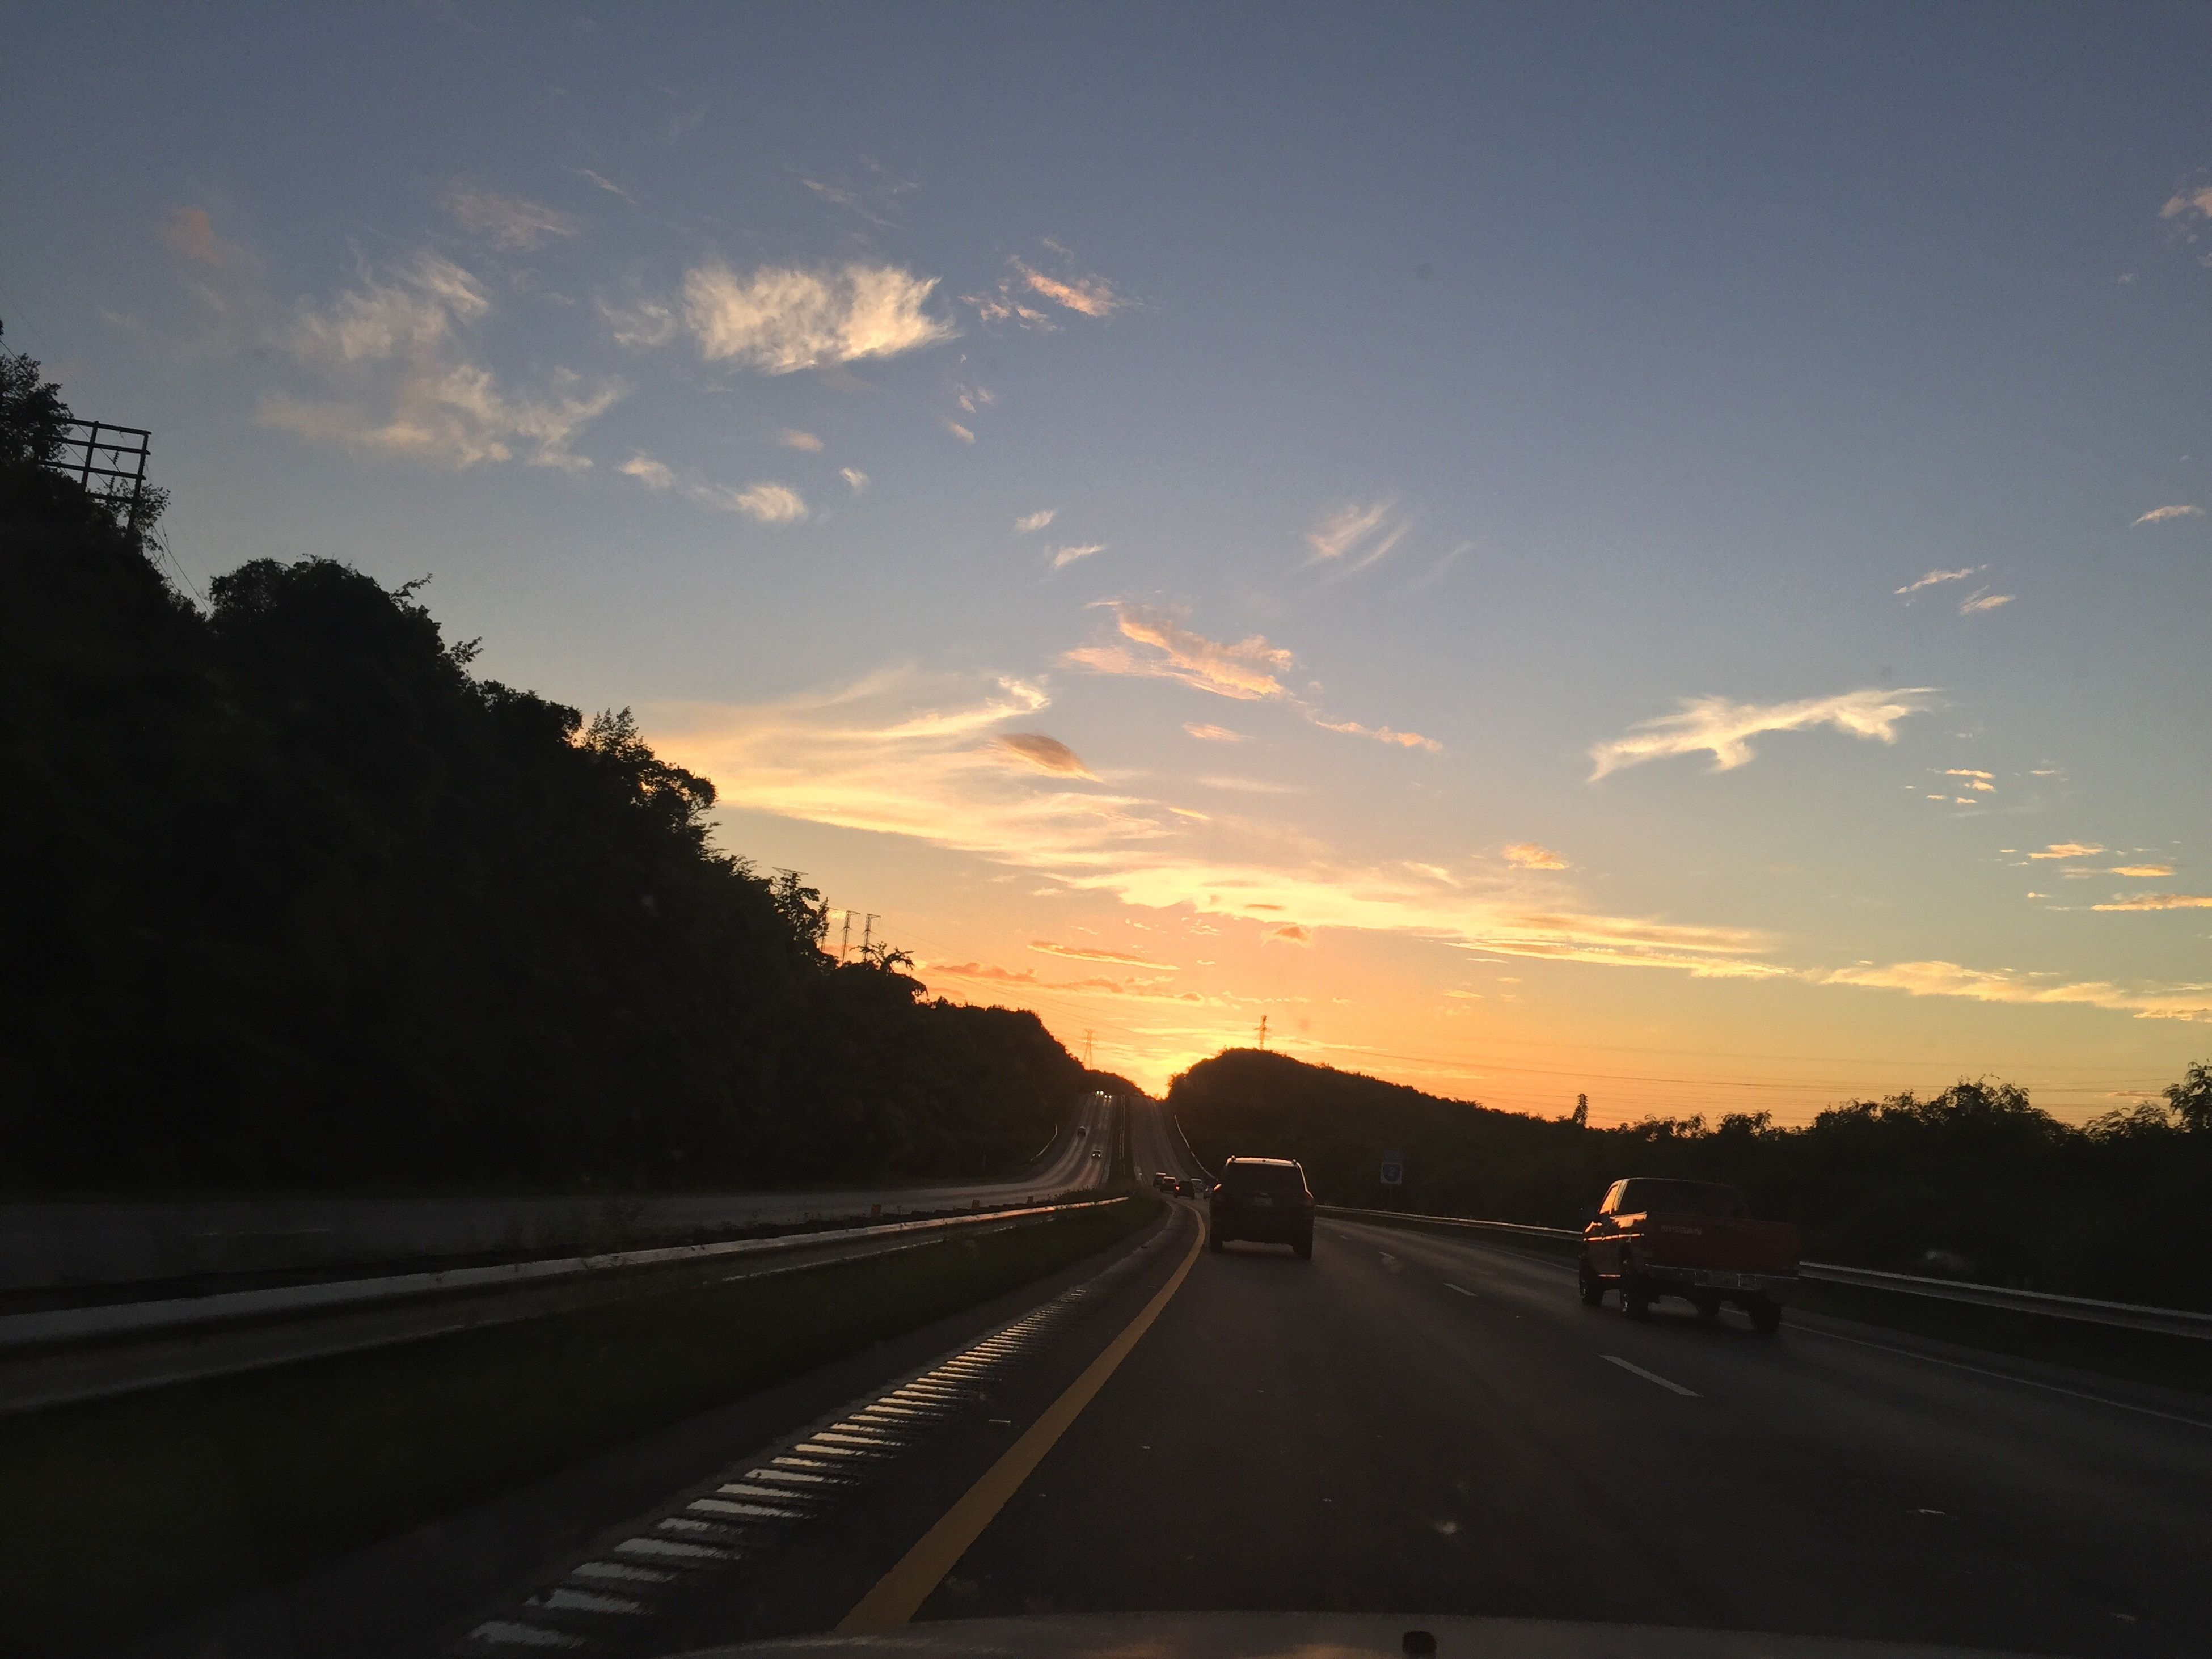 sunset, transportation, road, sky, the way forward, no people, outdoors, tree, beauty in nature, nature, day